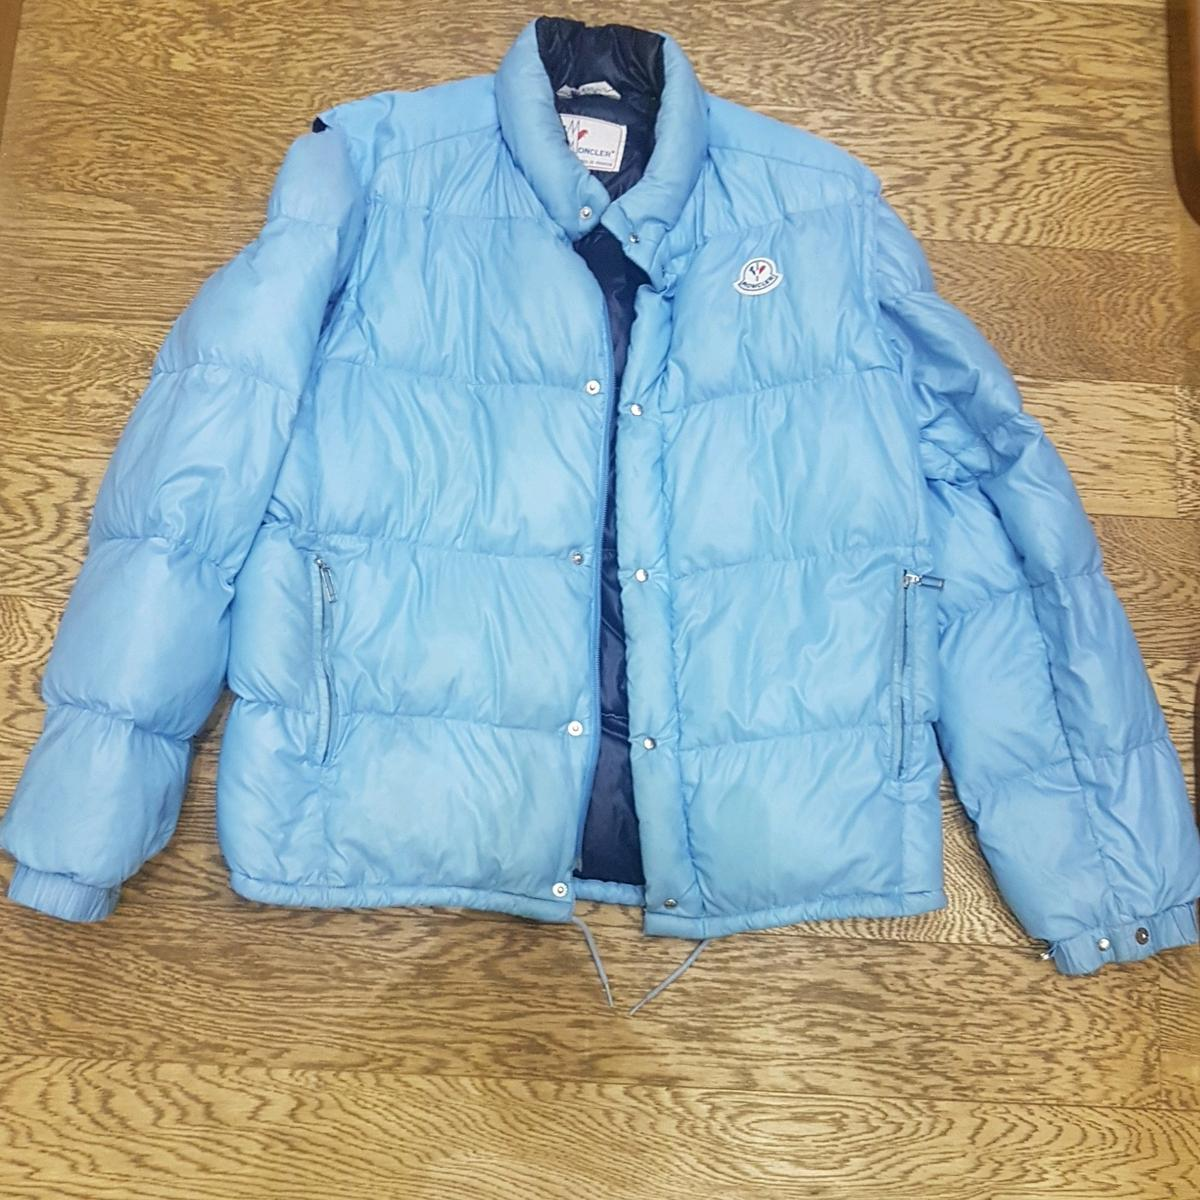 Moncler anni 80 grenoble in 20125 Milano for €80.00 for sale